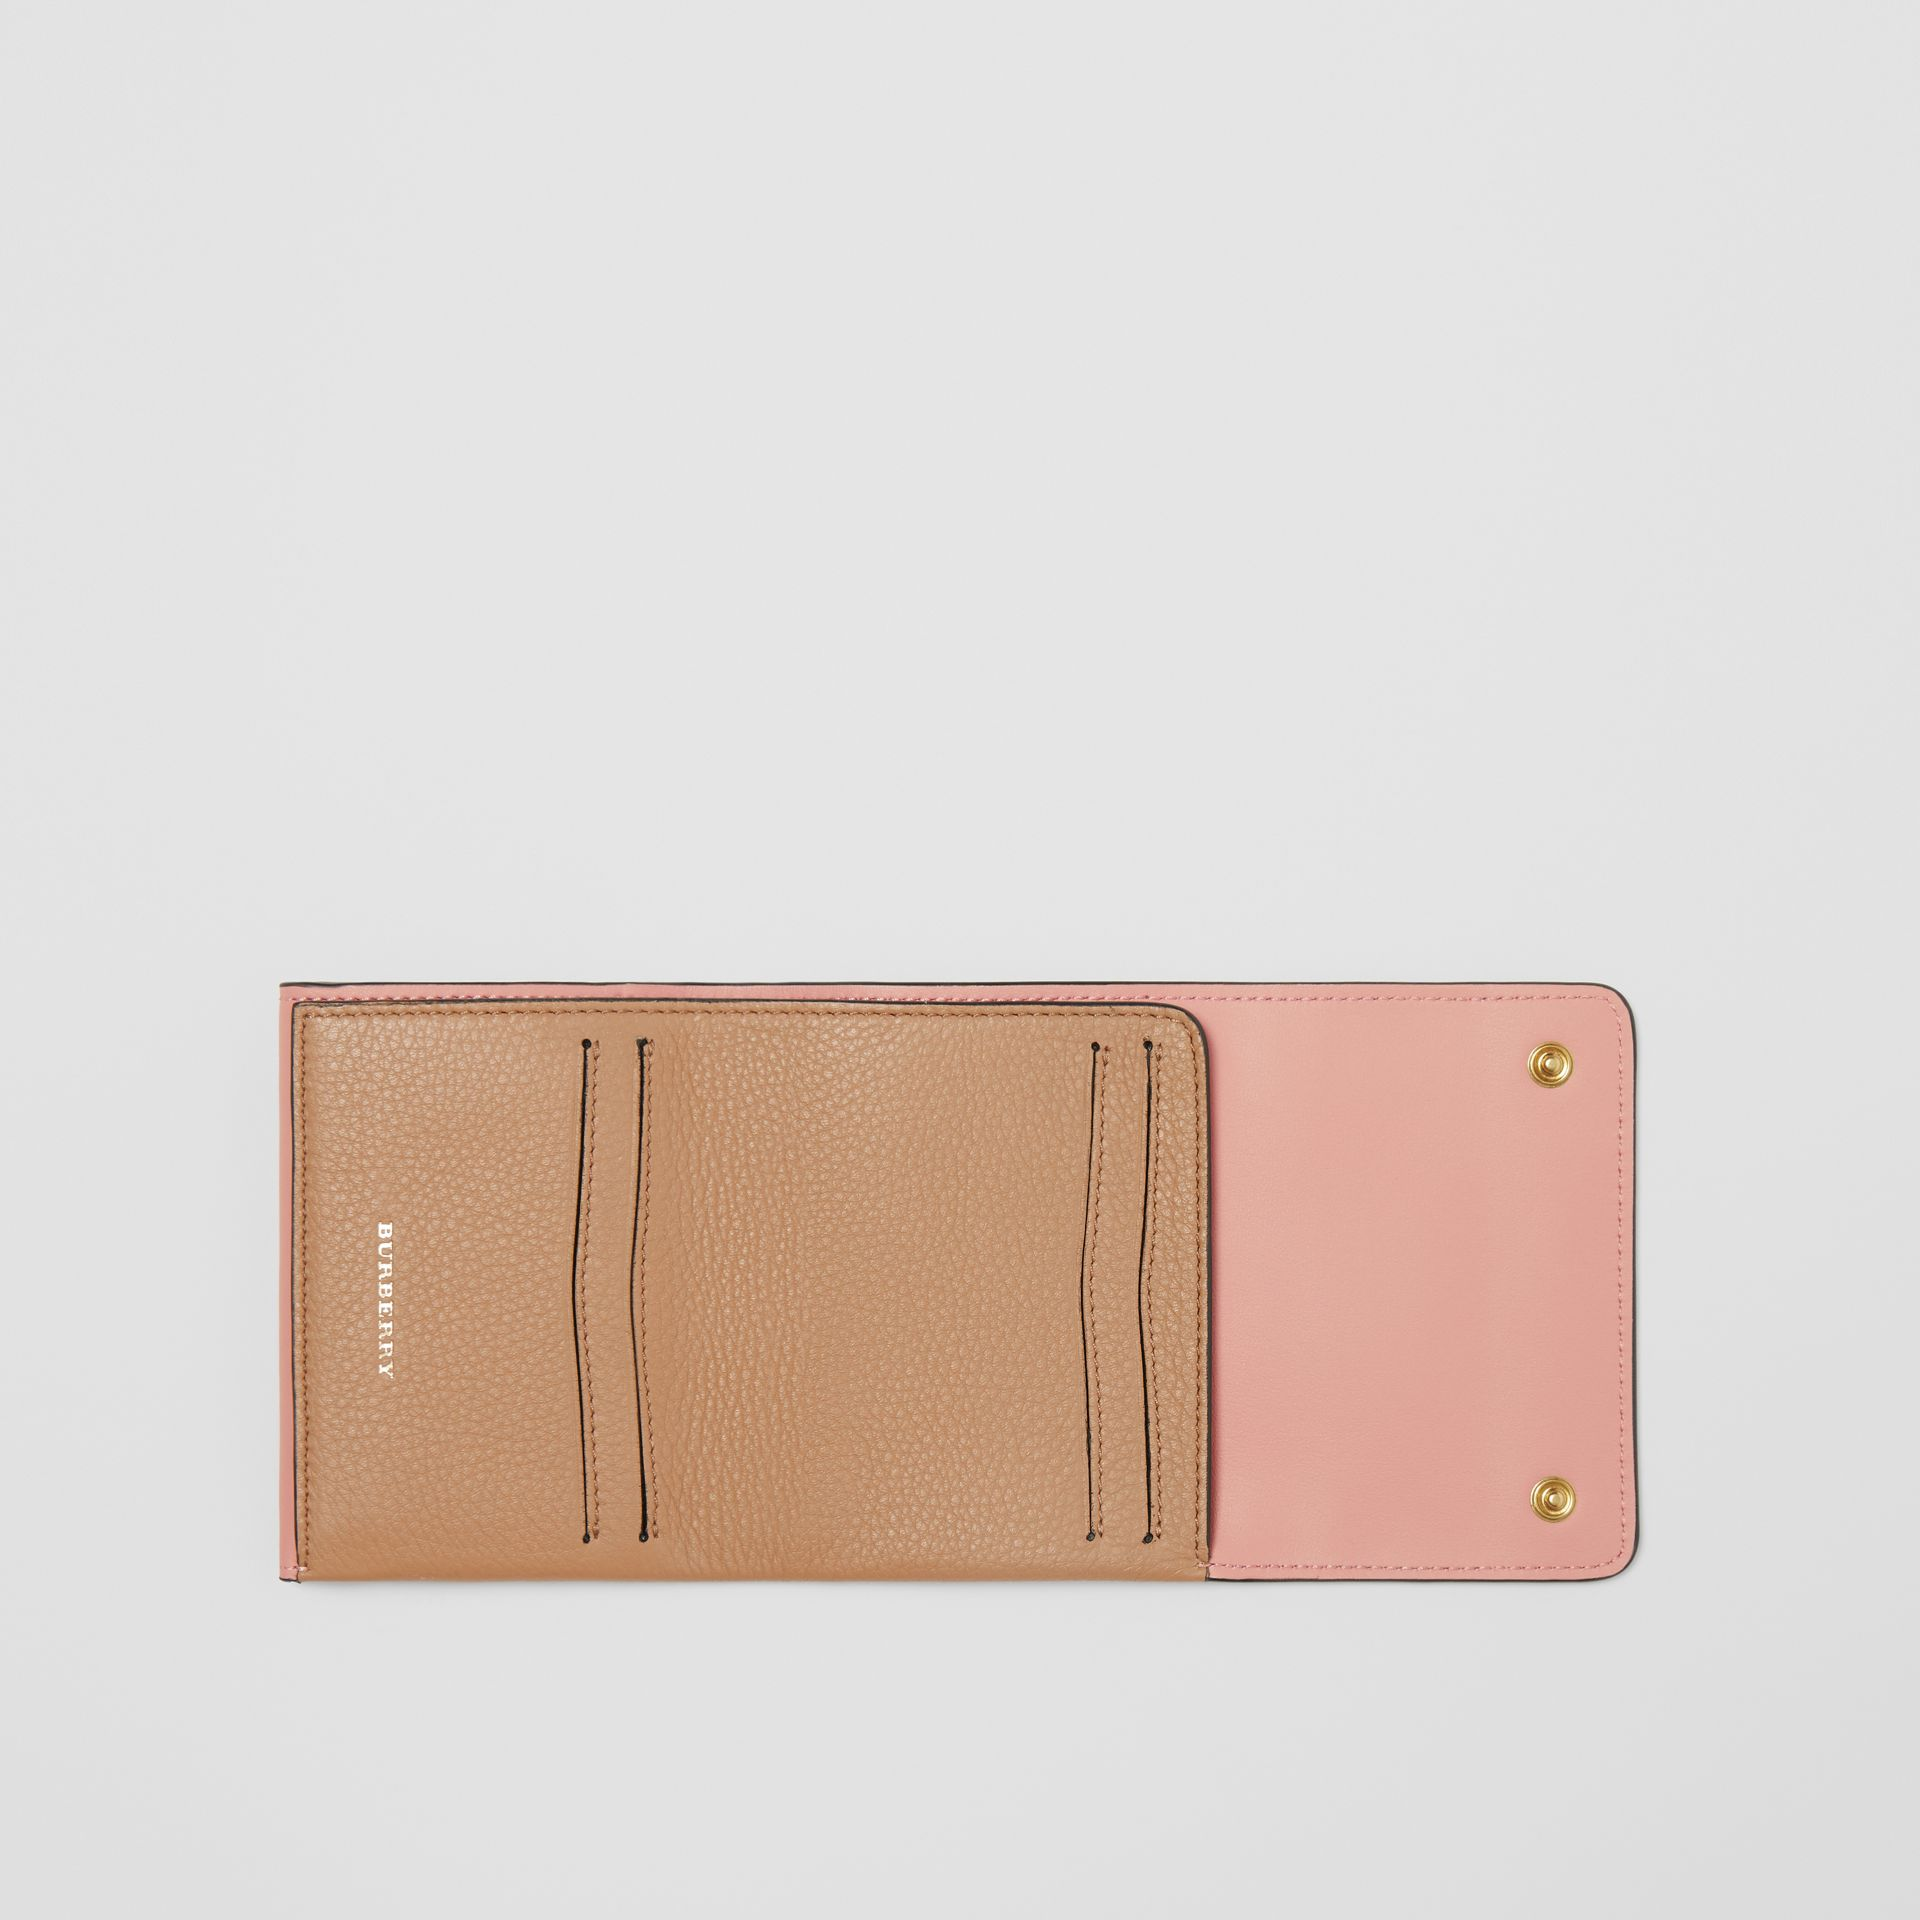 Small Leather Folding Wallet in Light Camel - Women | Burberry Hong Kong - gallery image 3